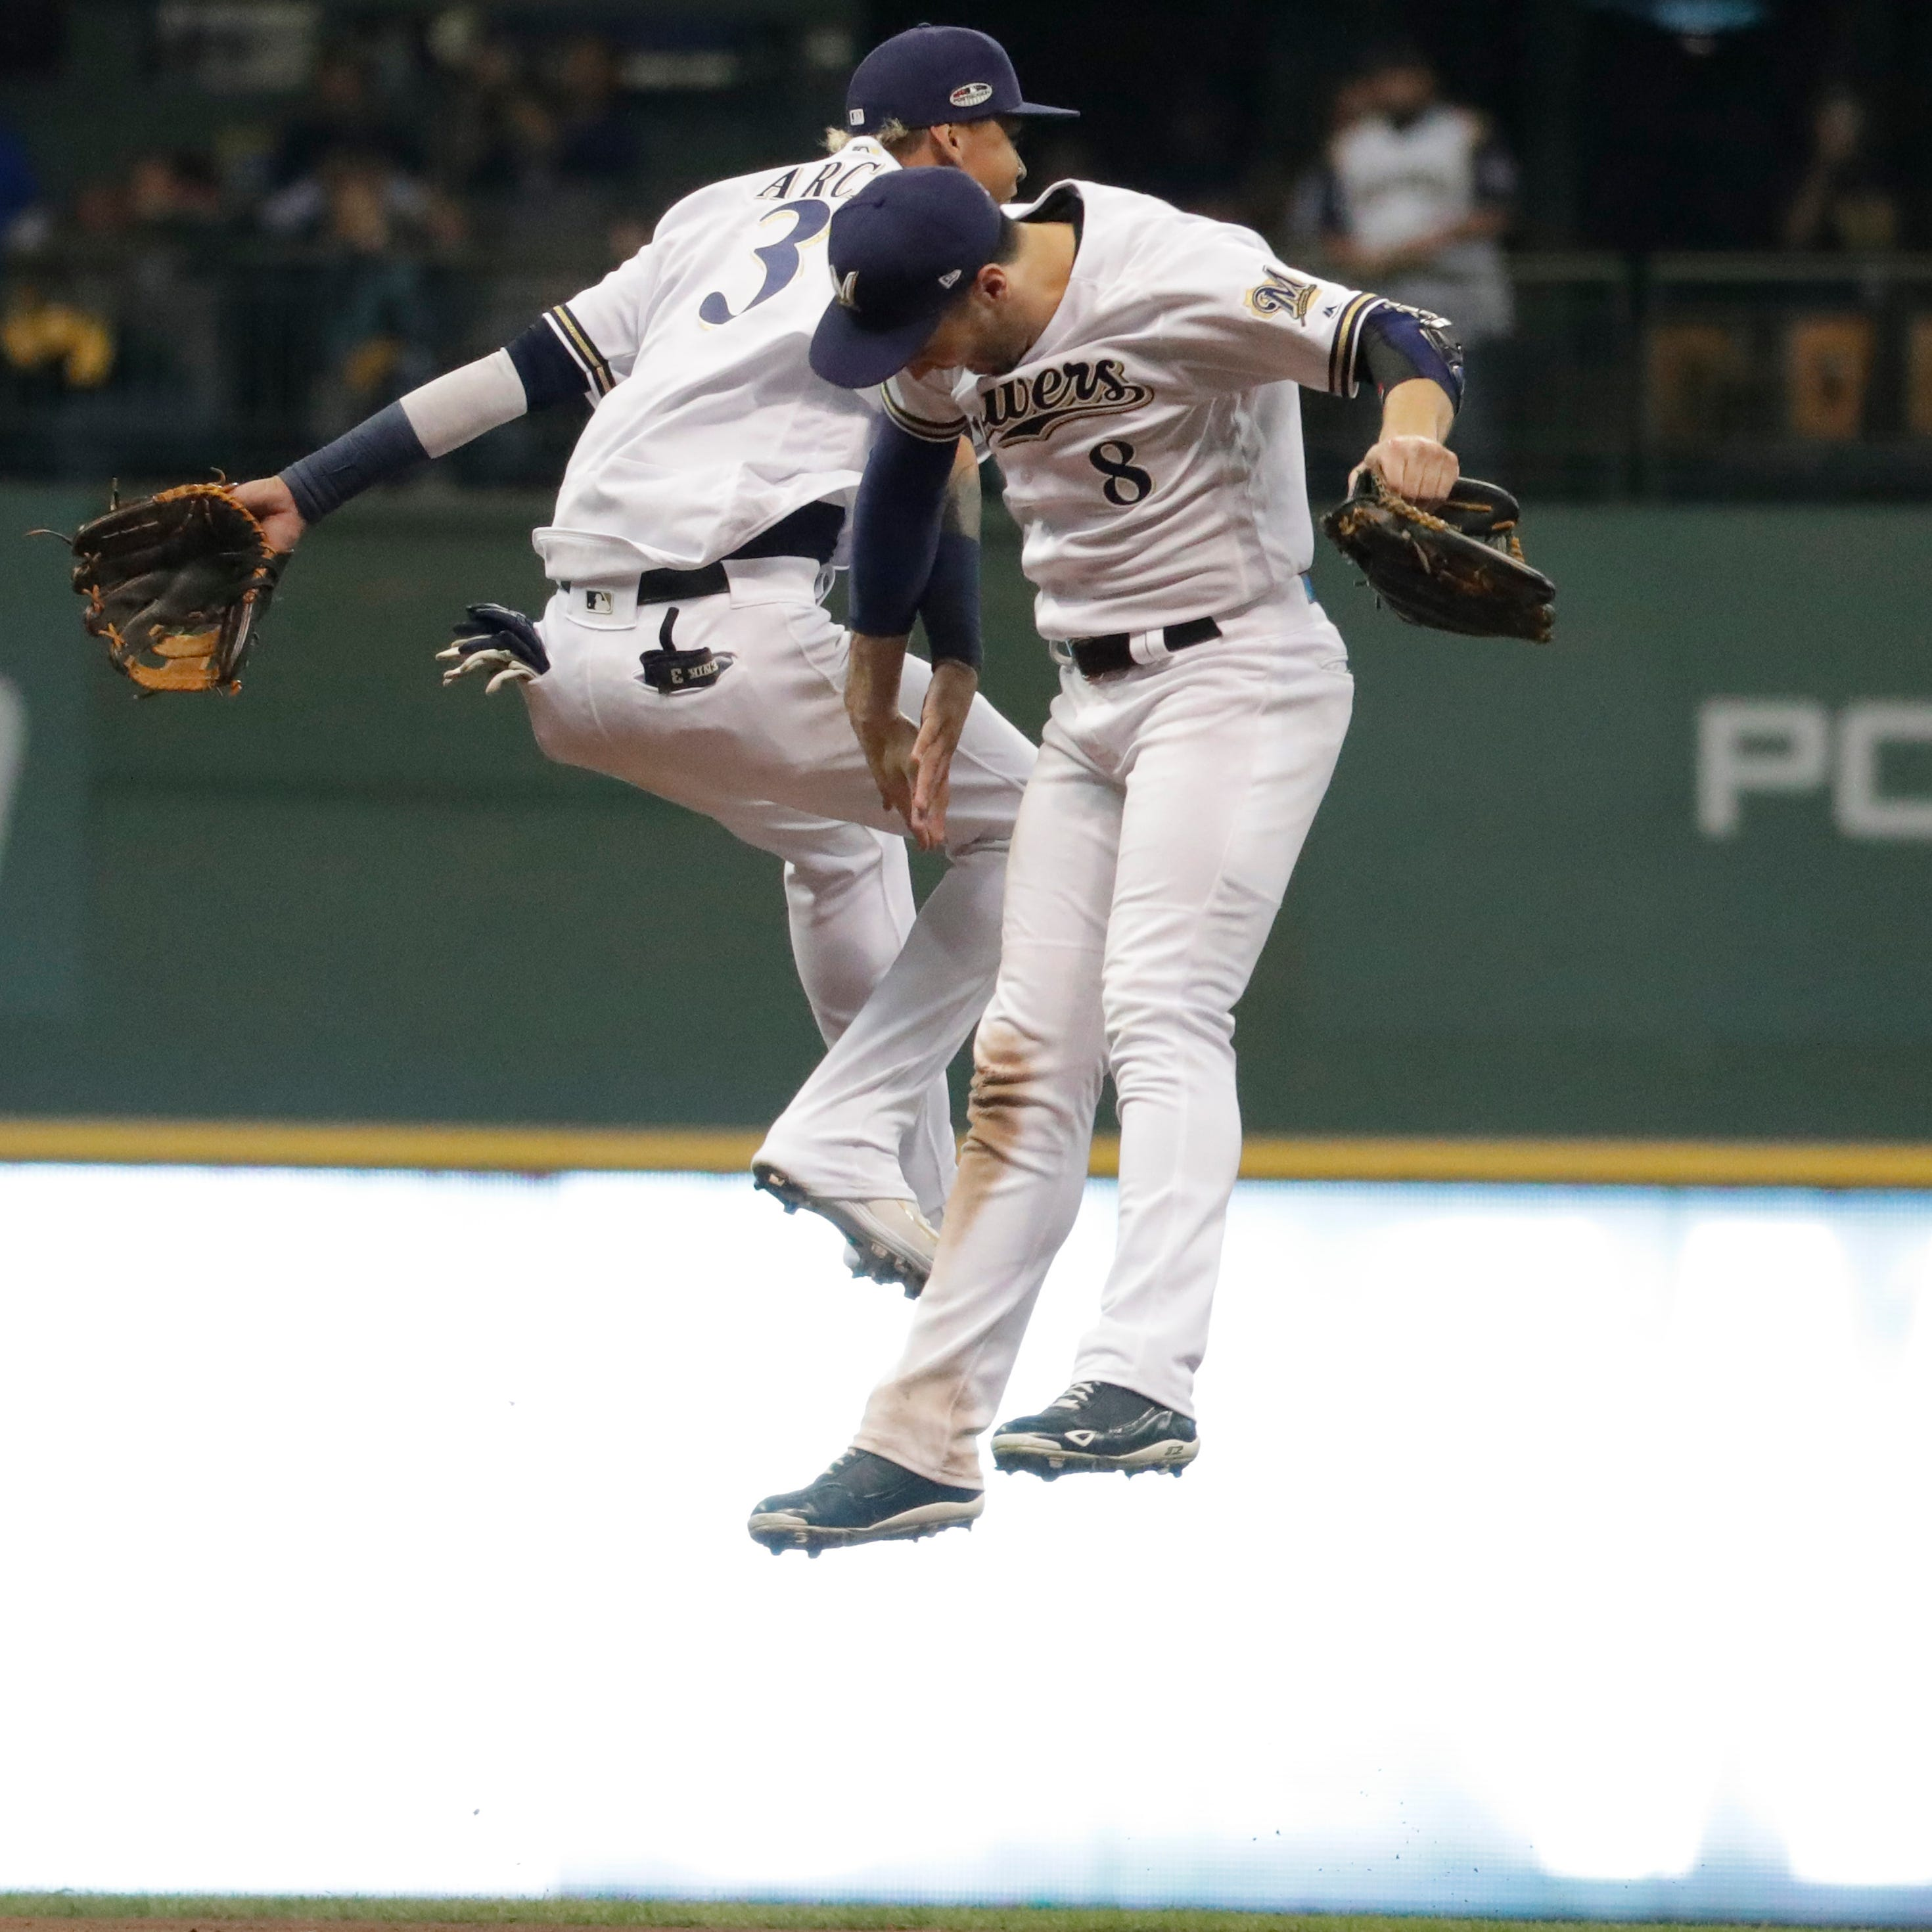 Haudricourt: Energy from fans spurs the Brewers to their first Game 7 since the World Series in 1982